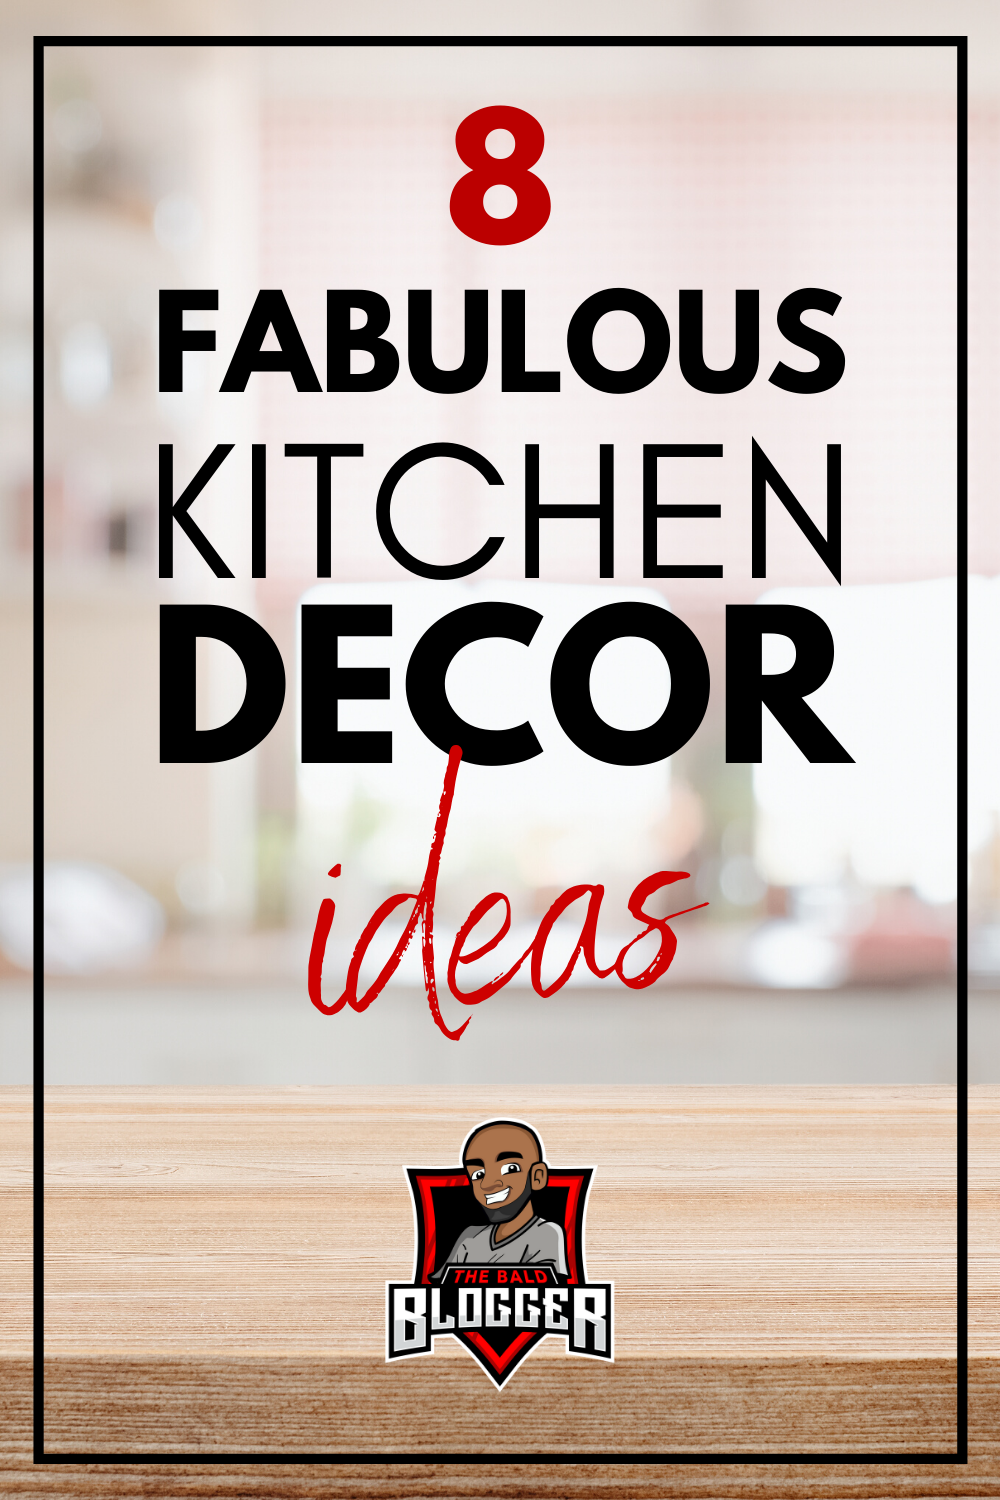 Kitchen decorating ideas that you will absolutely love. Check out these 8 fabulous kitchen décor ideas that will add value, style and elegance to your kitchen.   #kitchendecoratingideas #kitchendecorthemes #modernkitchendecor